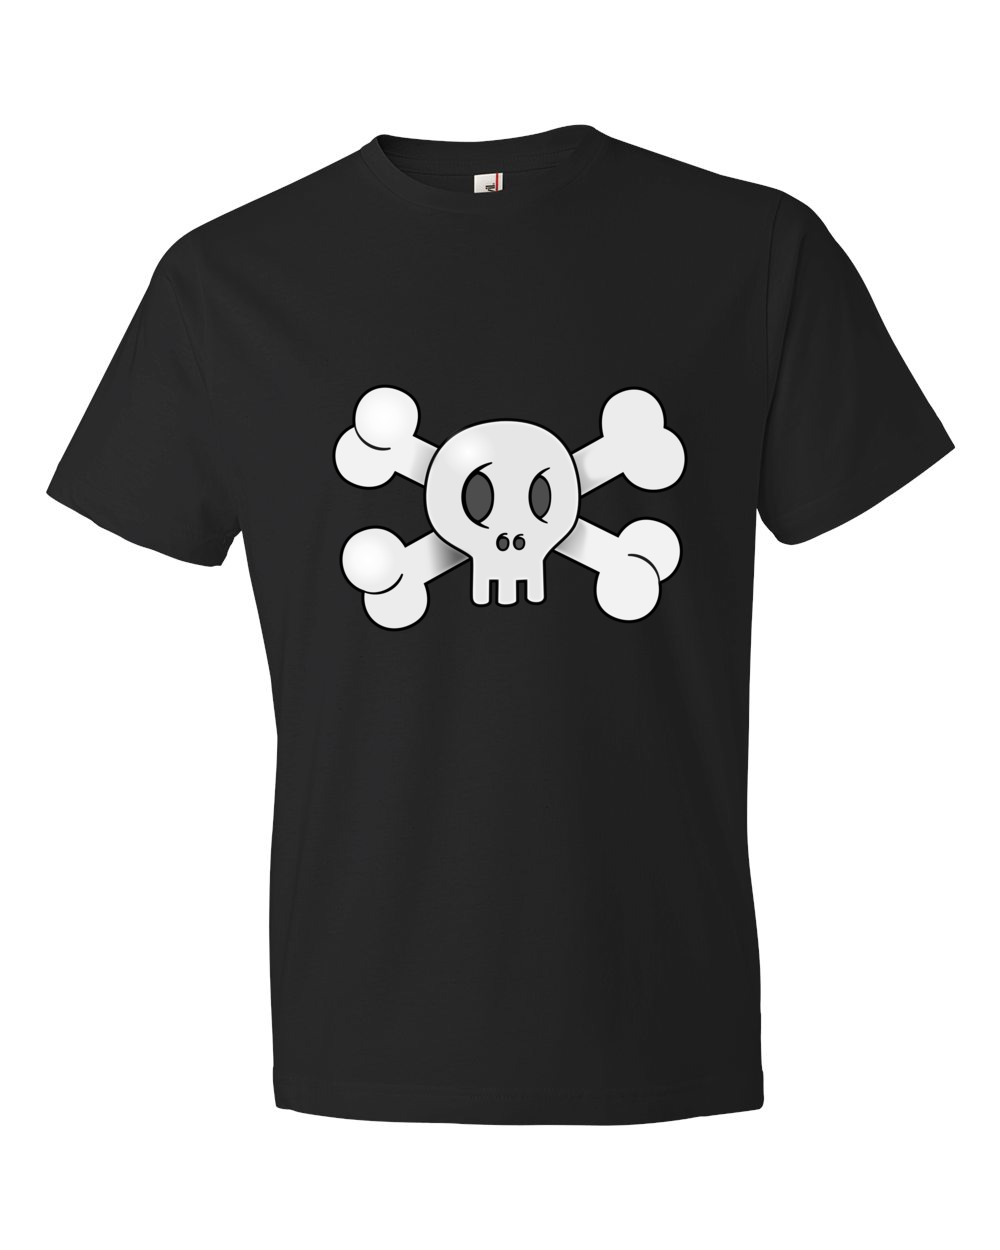 Pirates-Lightweight-Fashion-Short-Sleeve-T-Shirt-by-iTEE.com-4